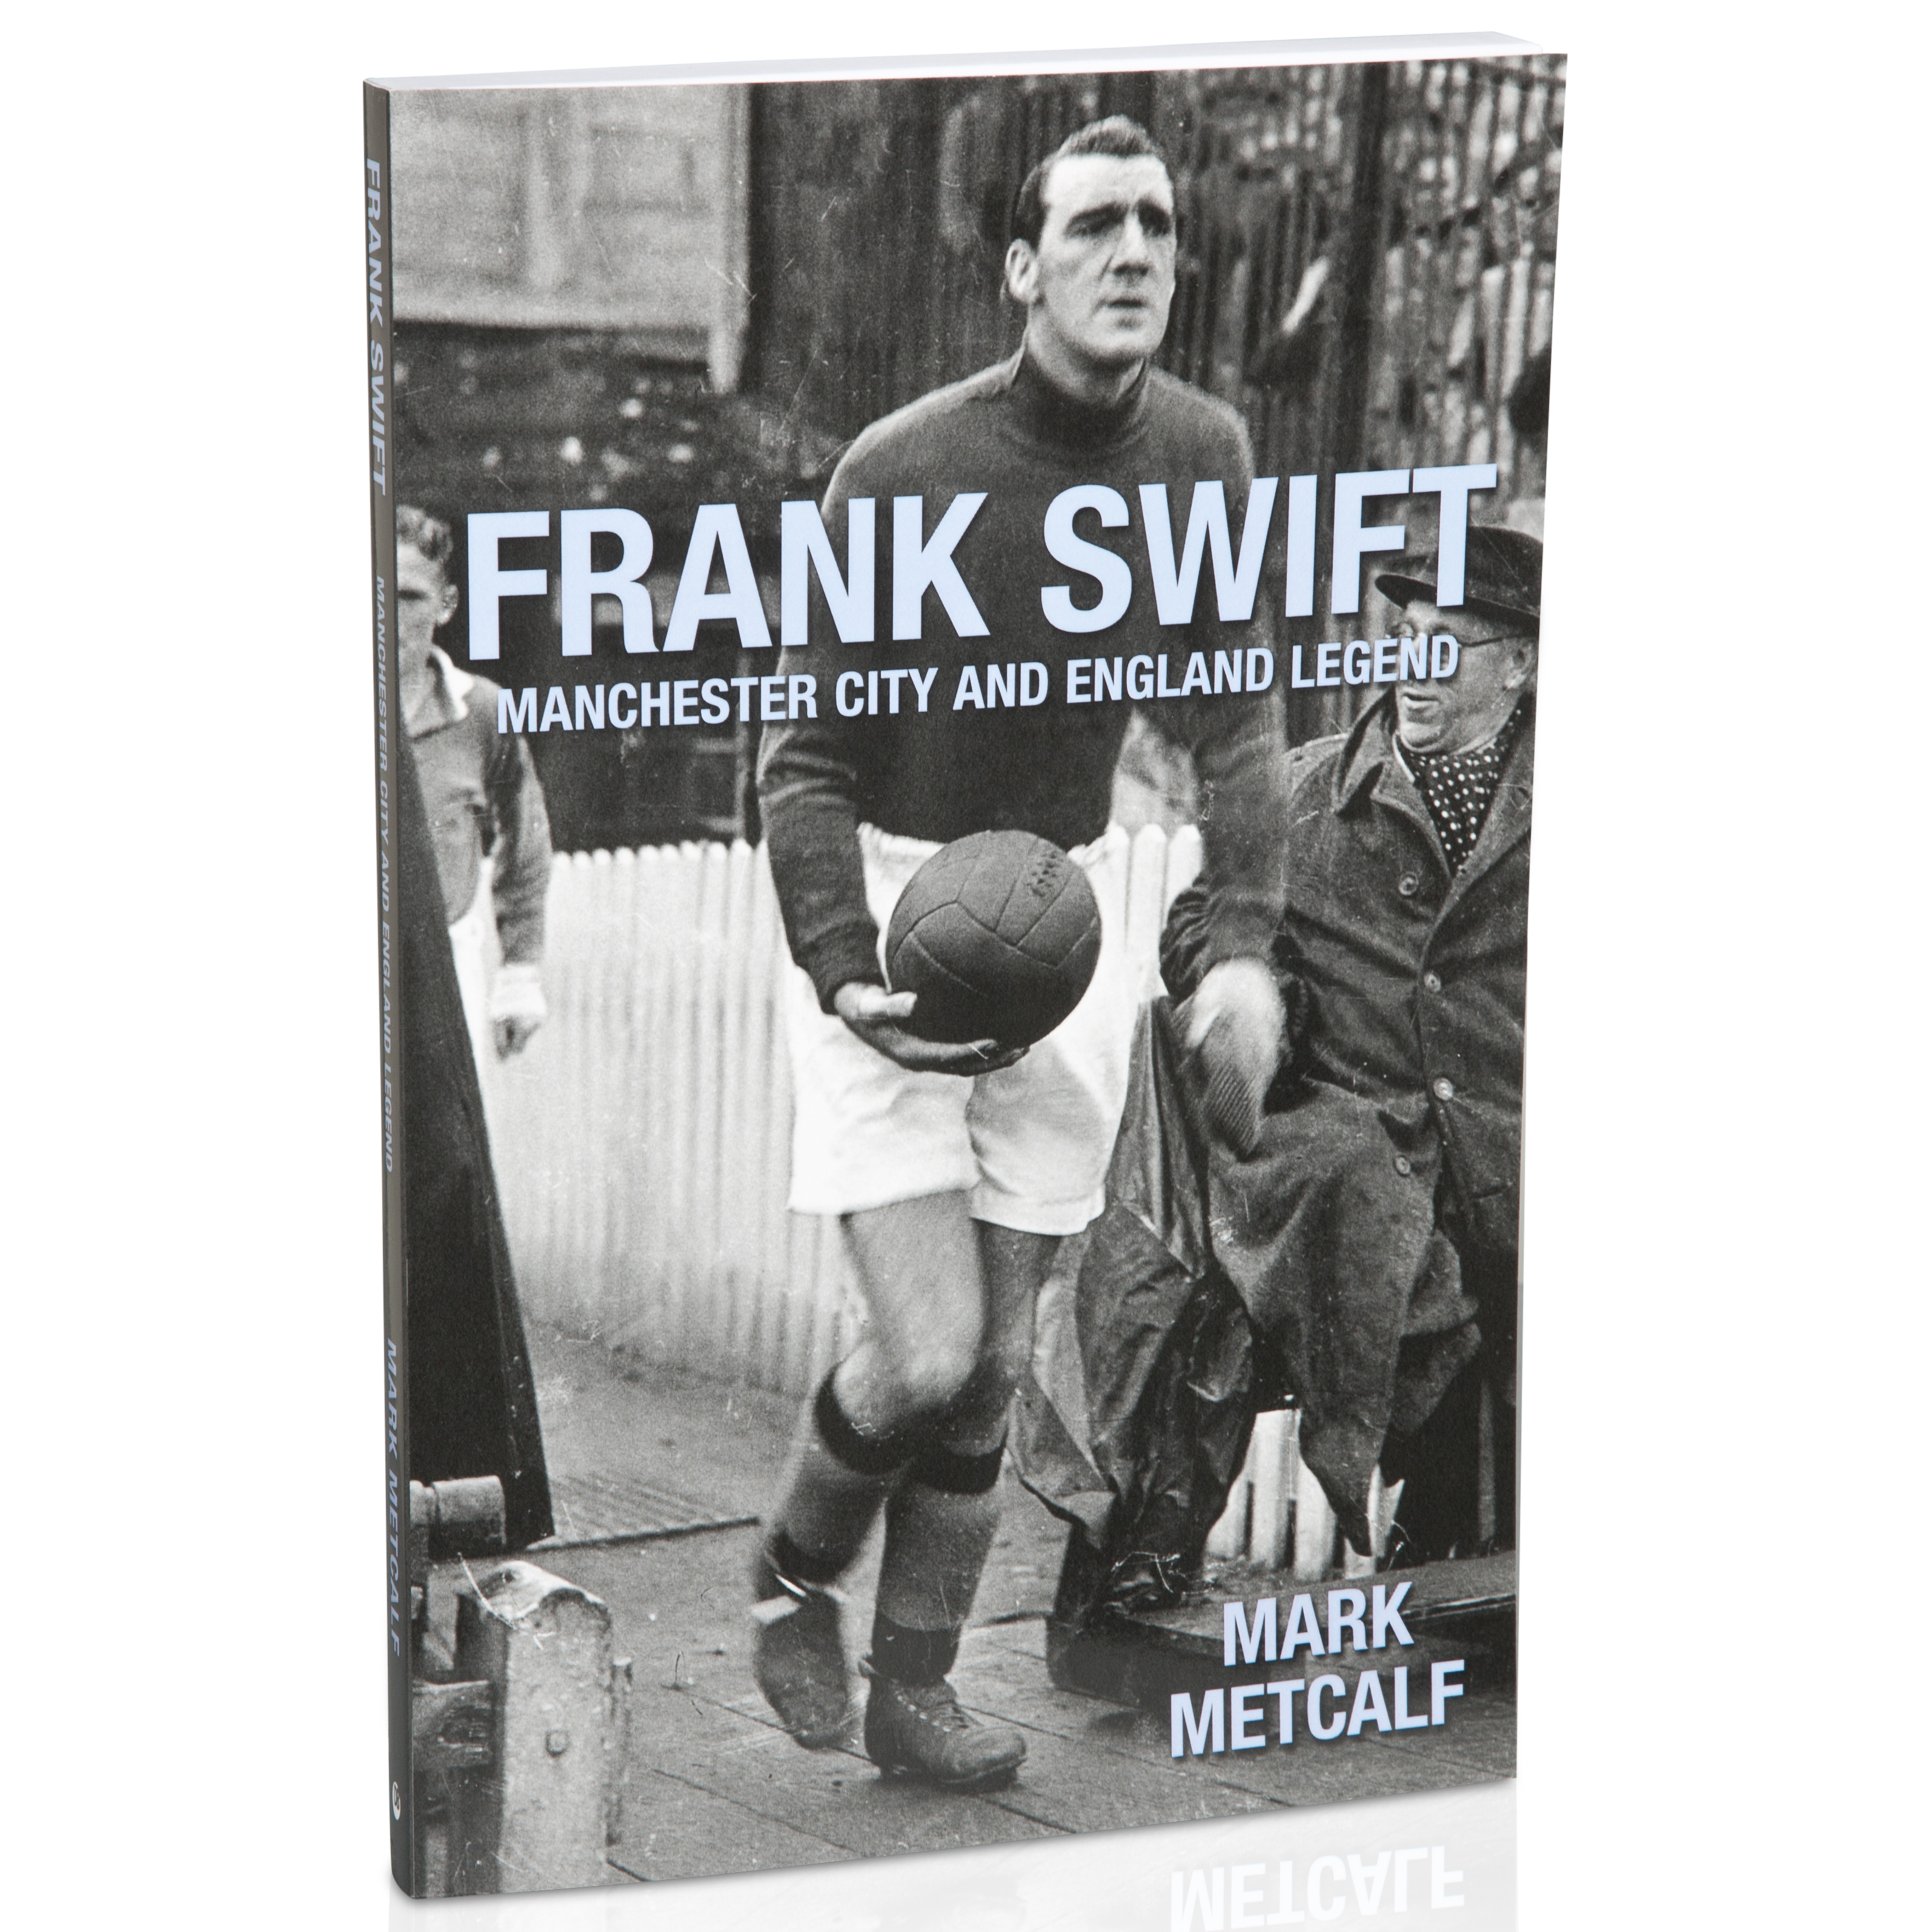 Manchester City Frank Swift and Legend Paperback Book